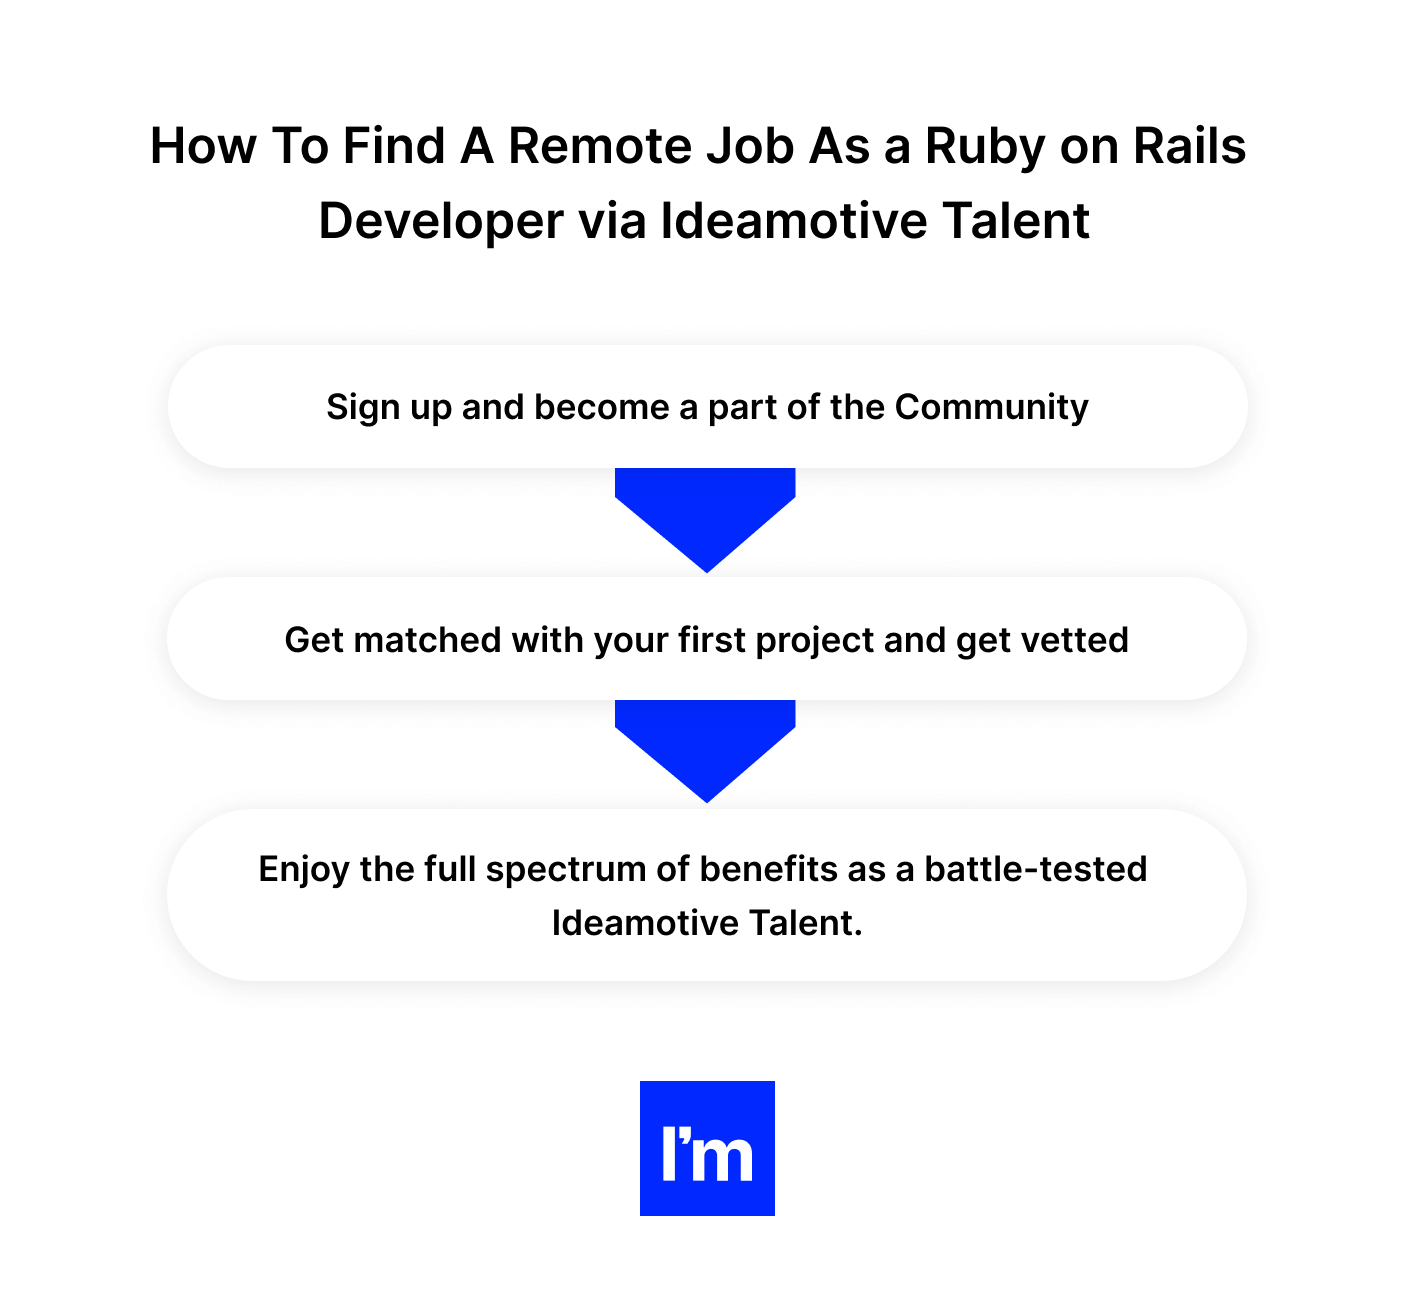 How To Find A Remote Job As a Ruby on Rails Developer checkbox